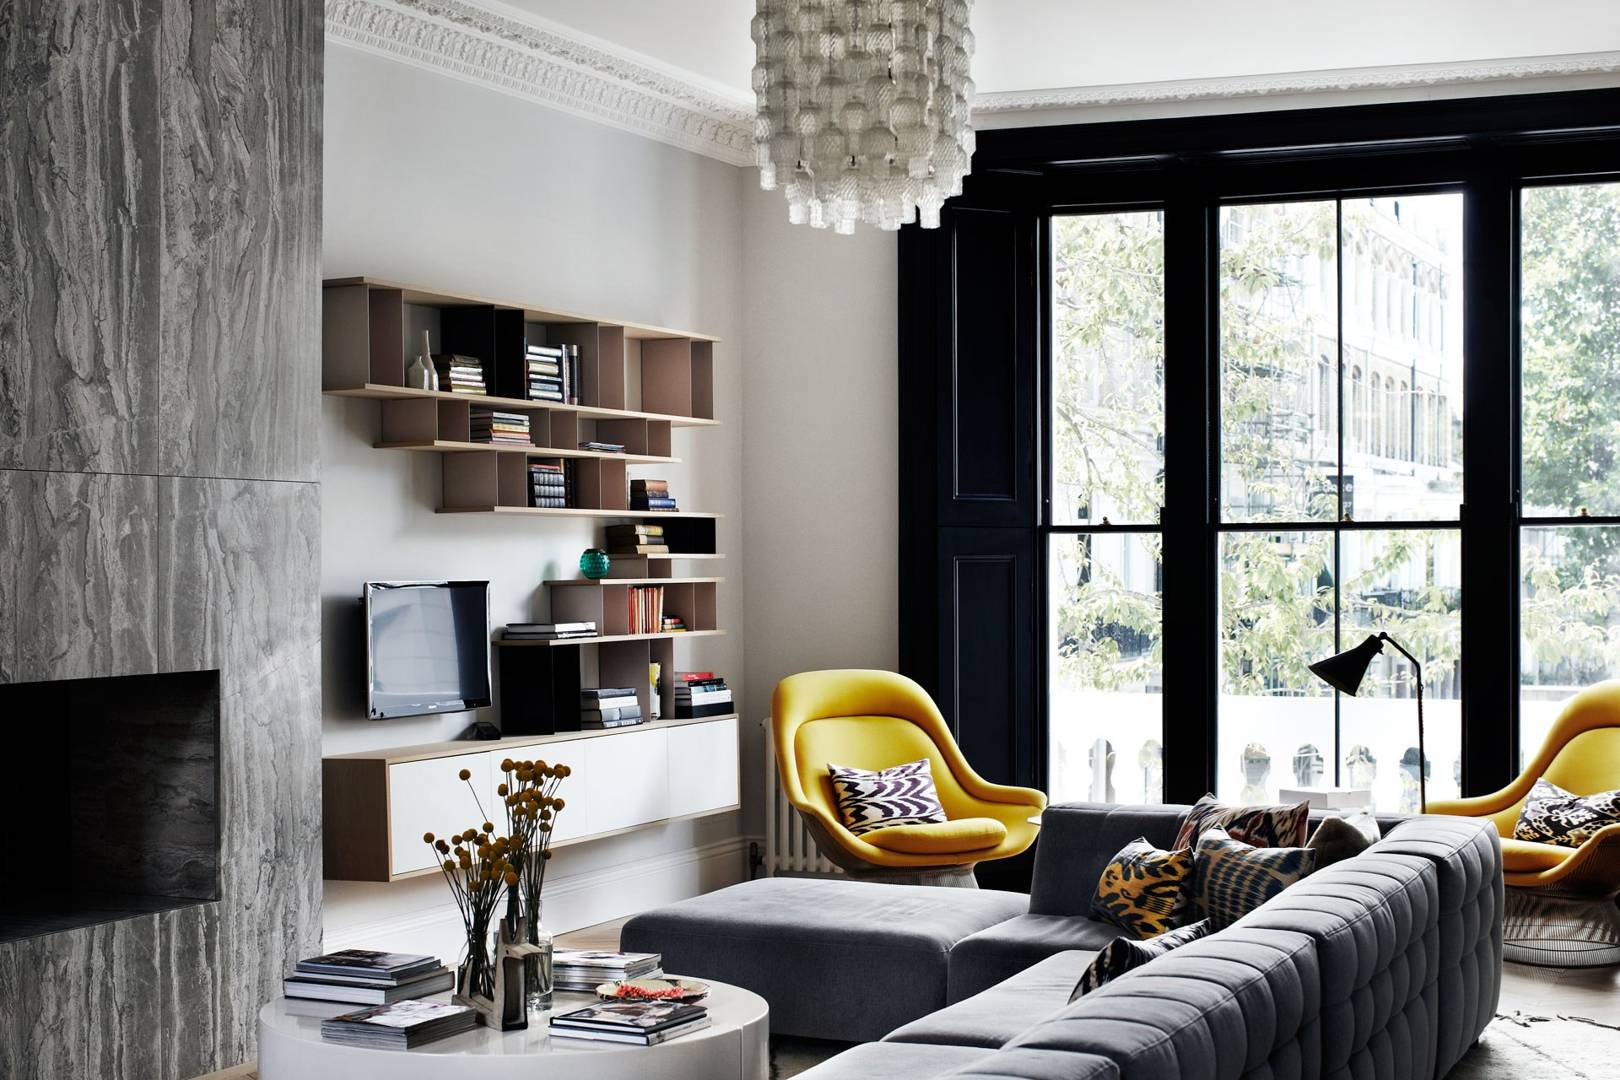 A glamorous London townhouse by Suzy Hoodless | House & Garden